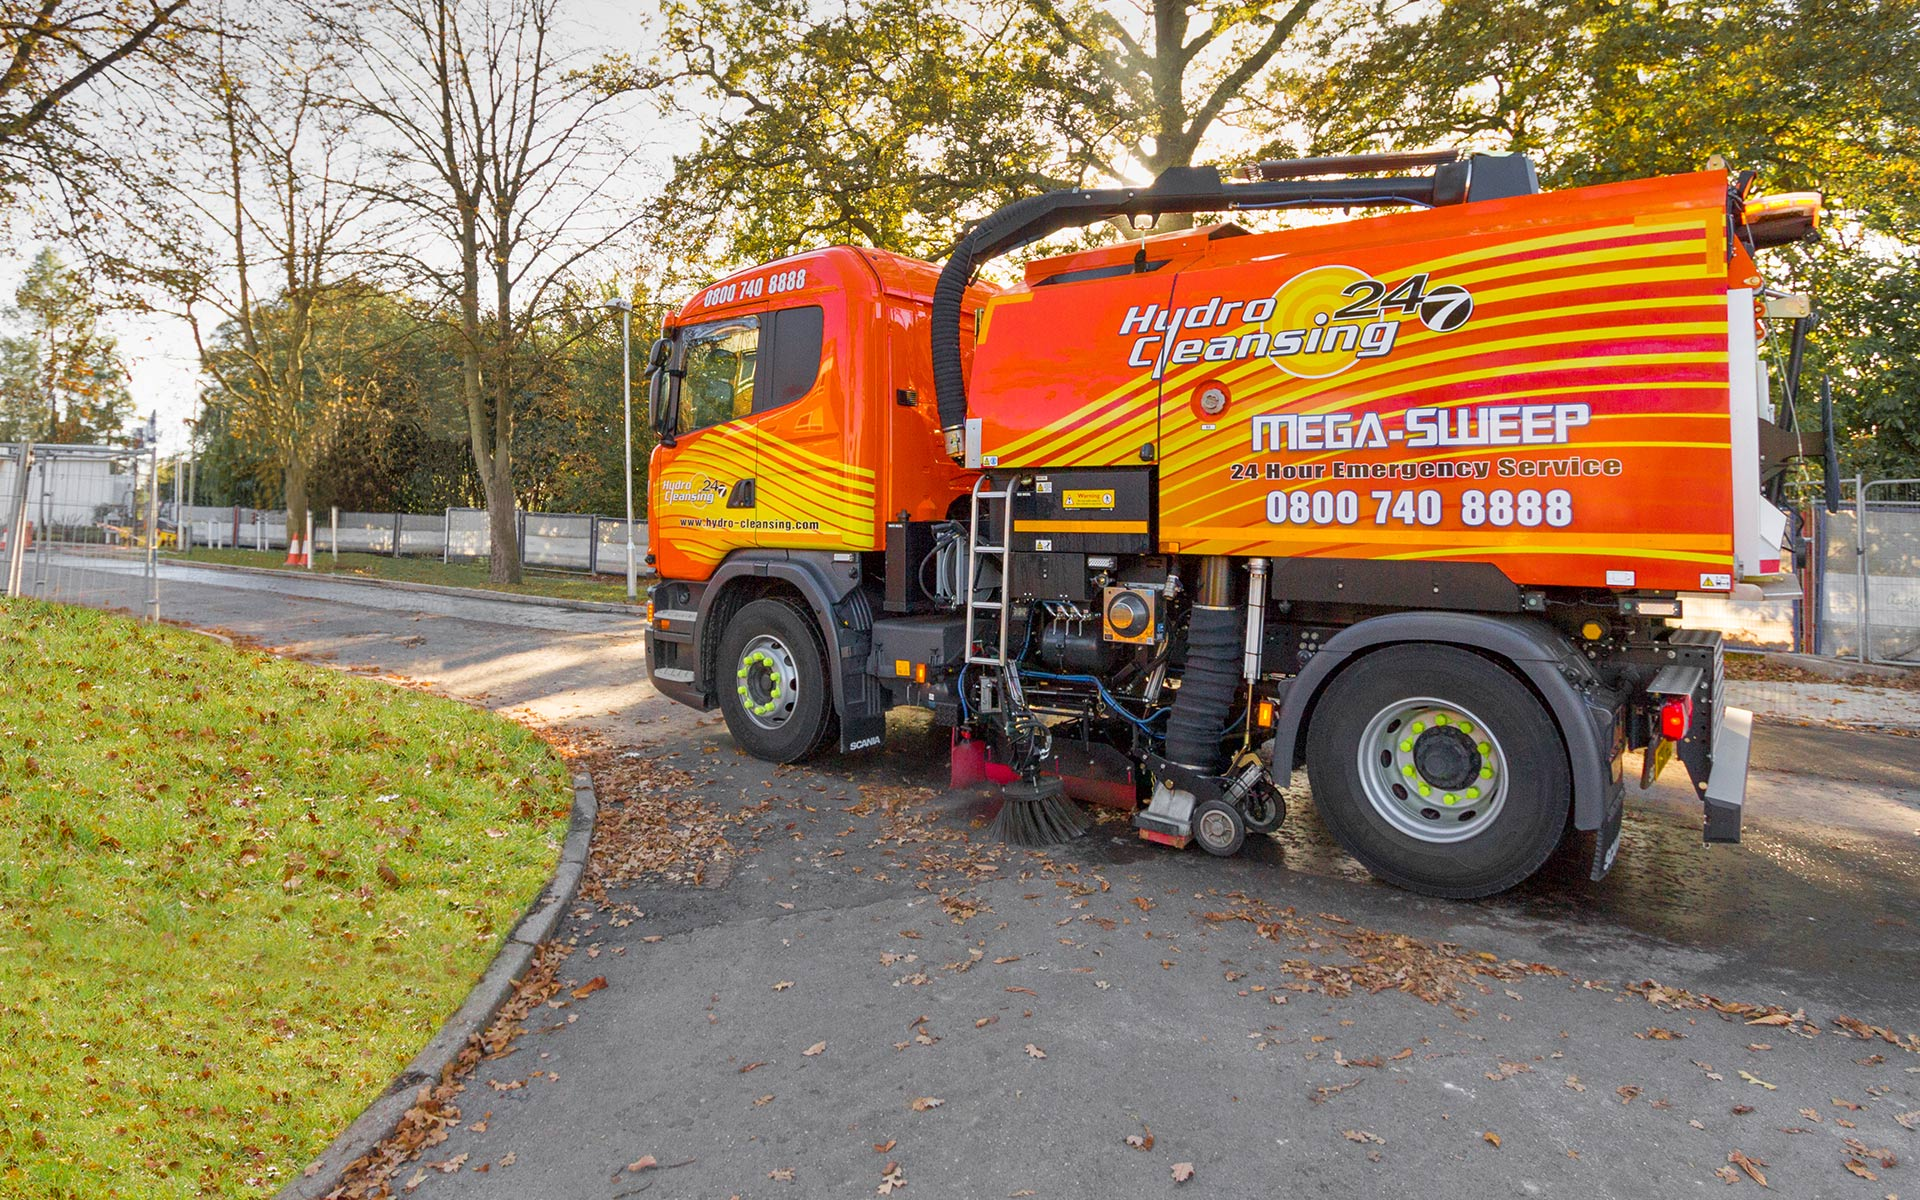 Equipped with high pressure water system to clean road